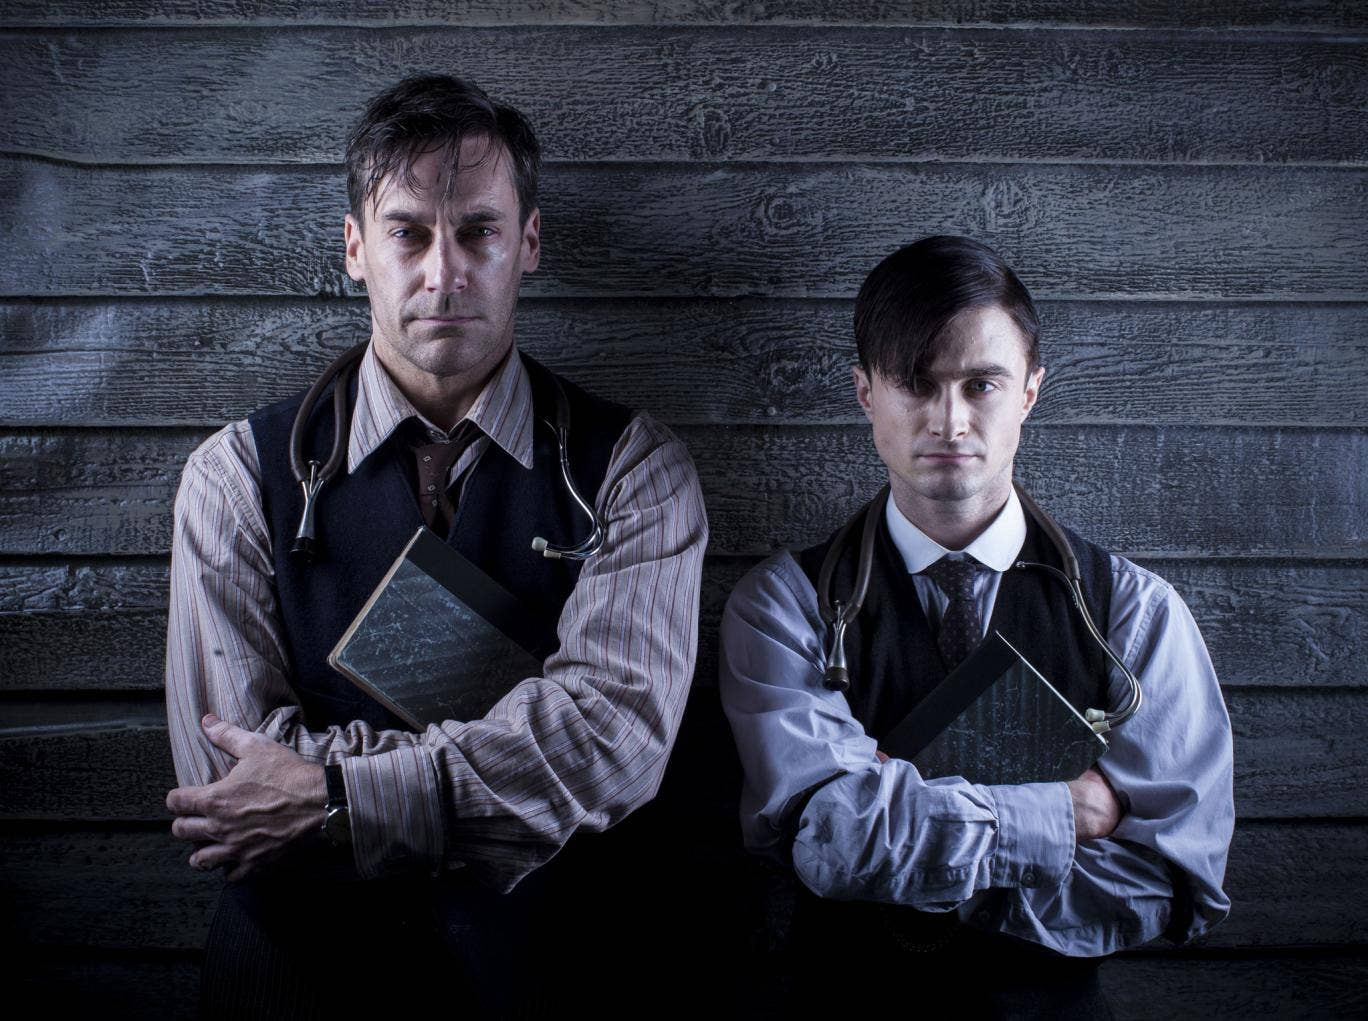 Jon Hamm and Daniel Radcliffe, in A Young Doctor's Notebook